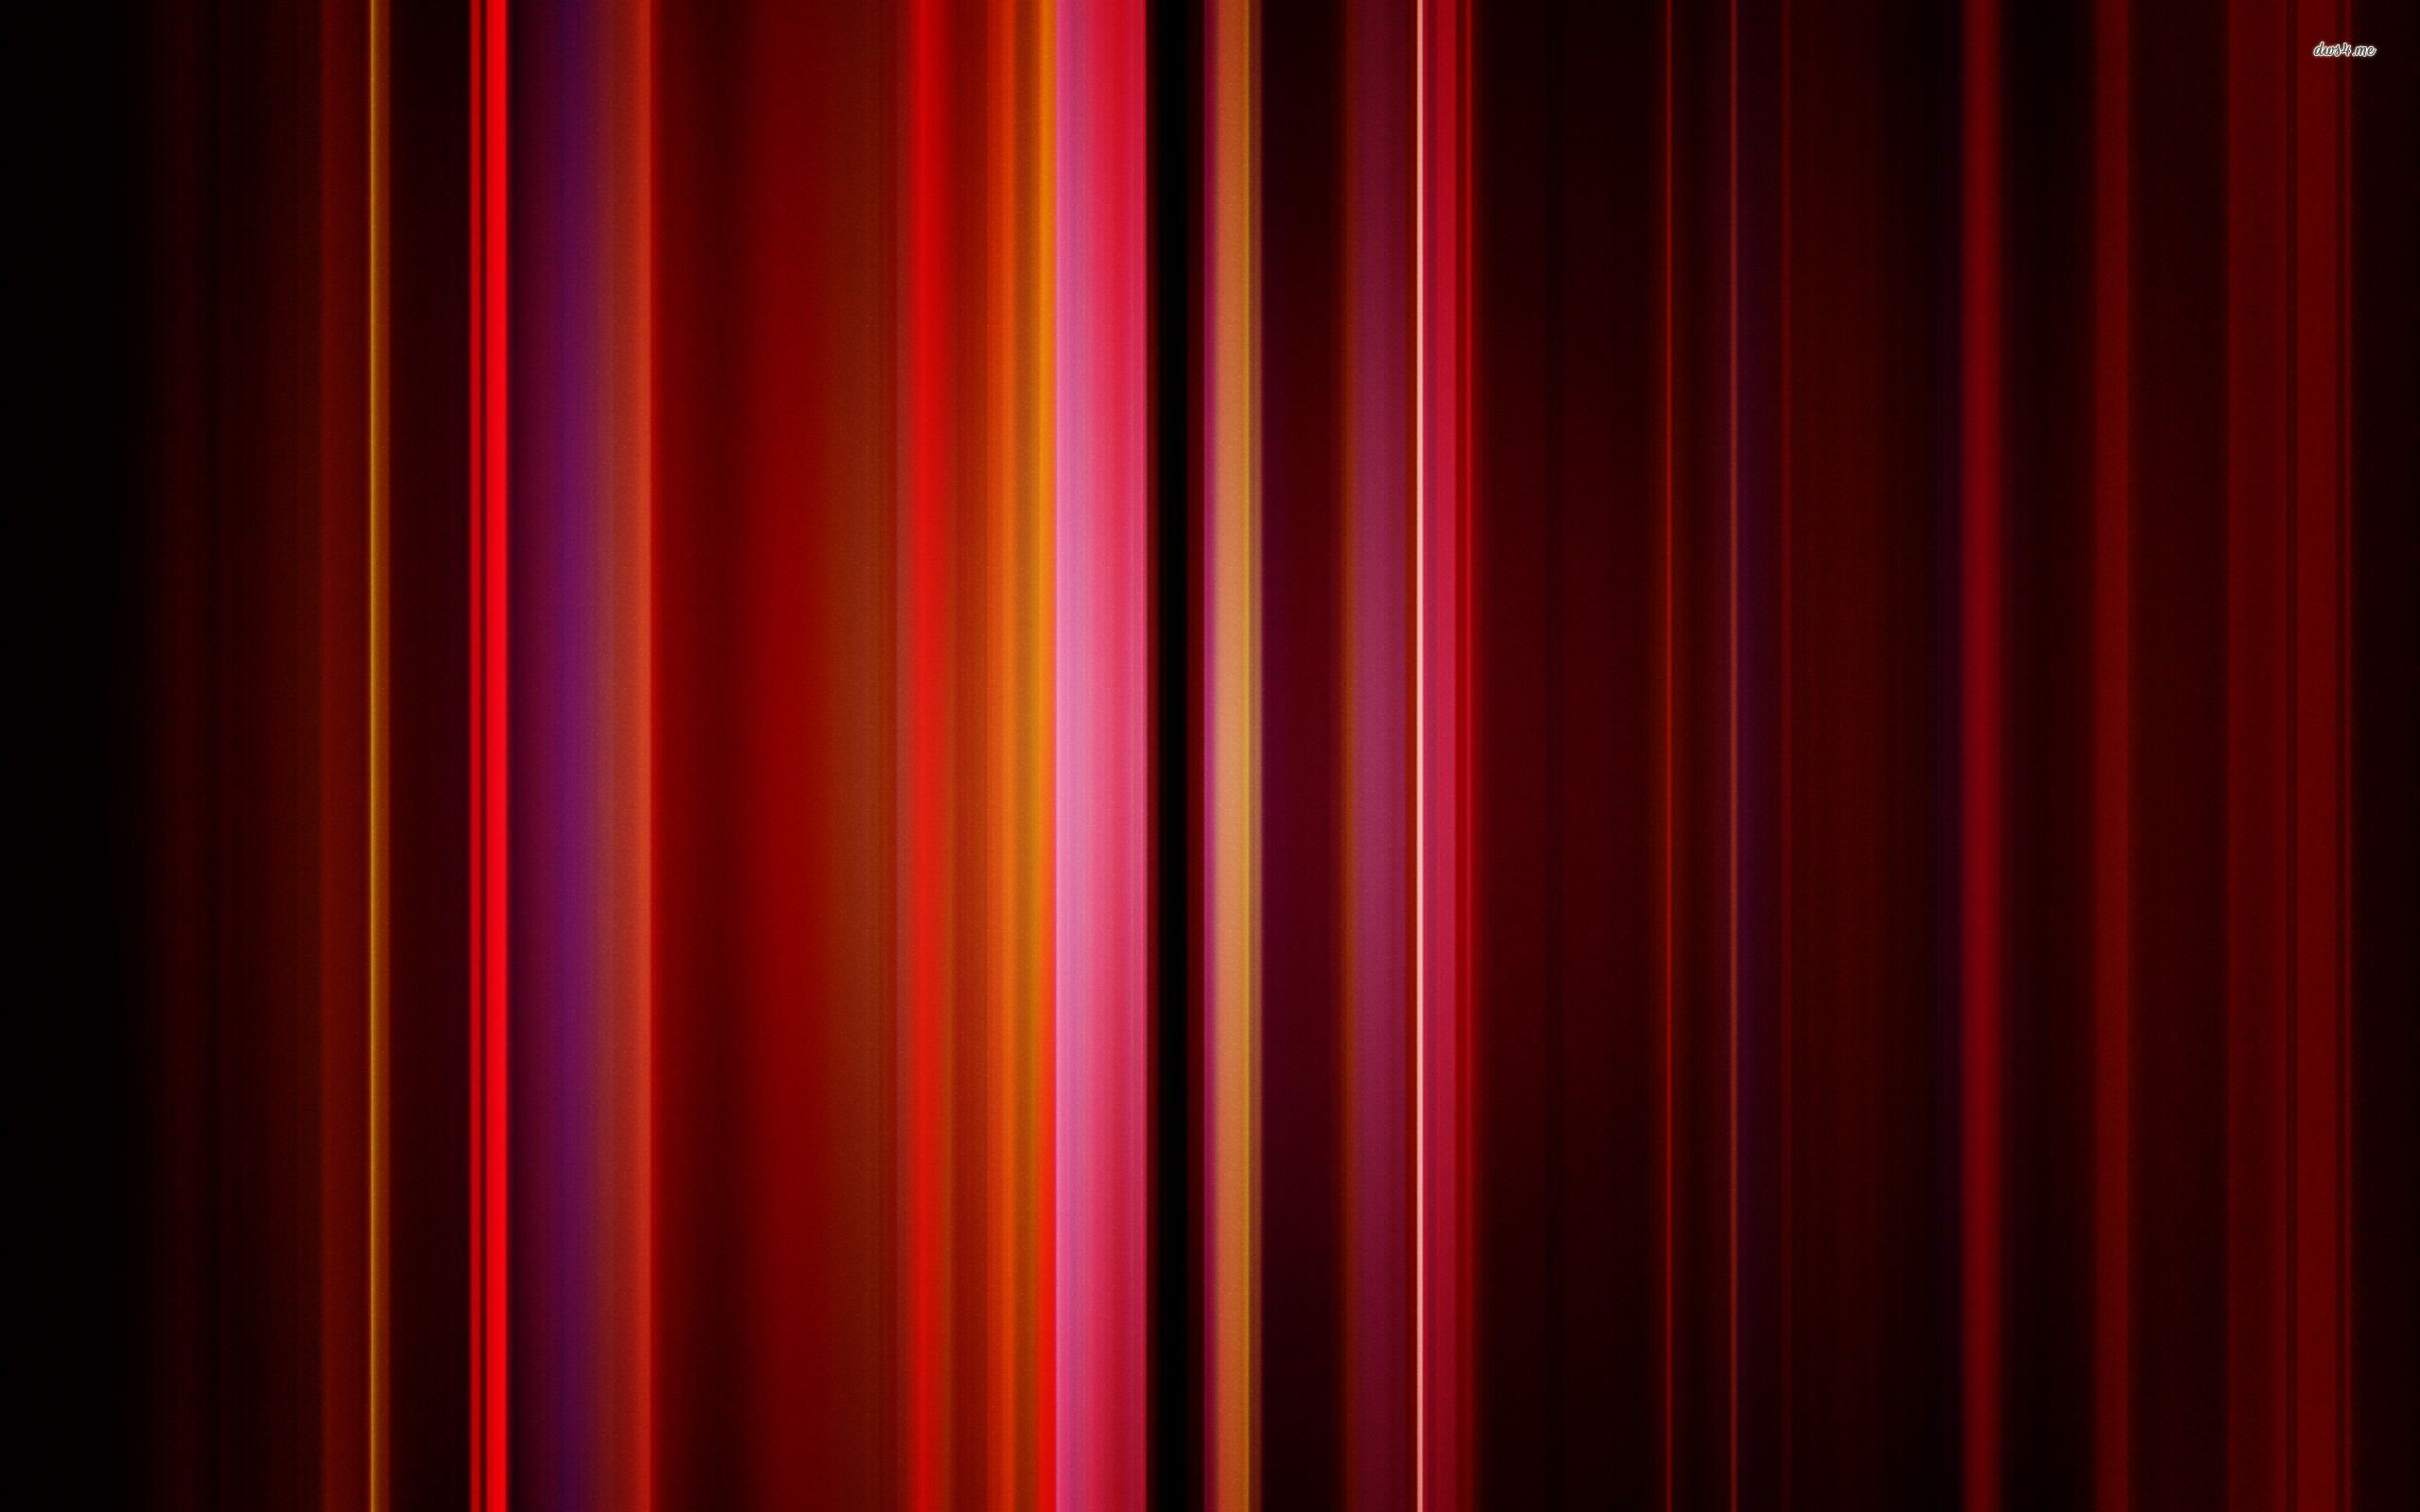 awesome vertical lines wallpaper - photo #45